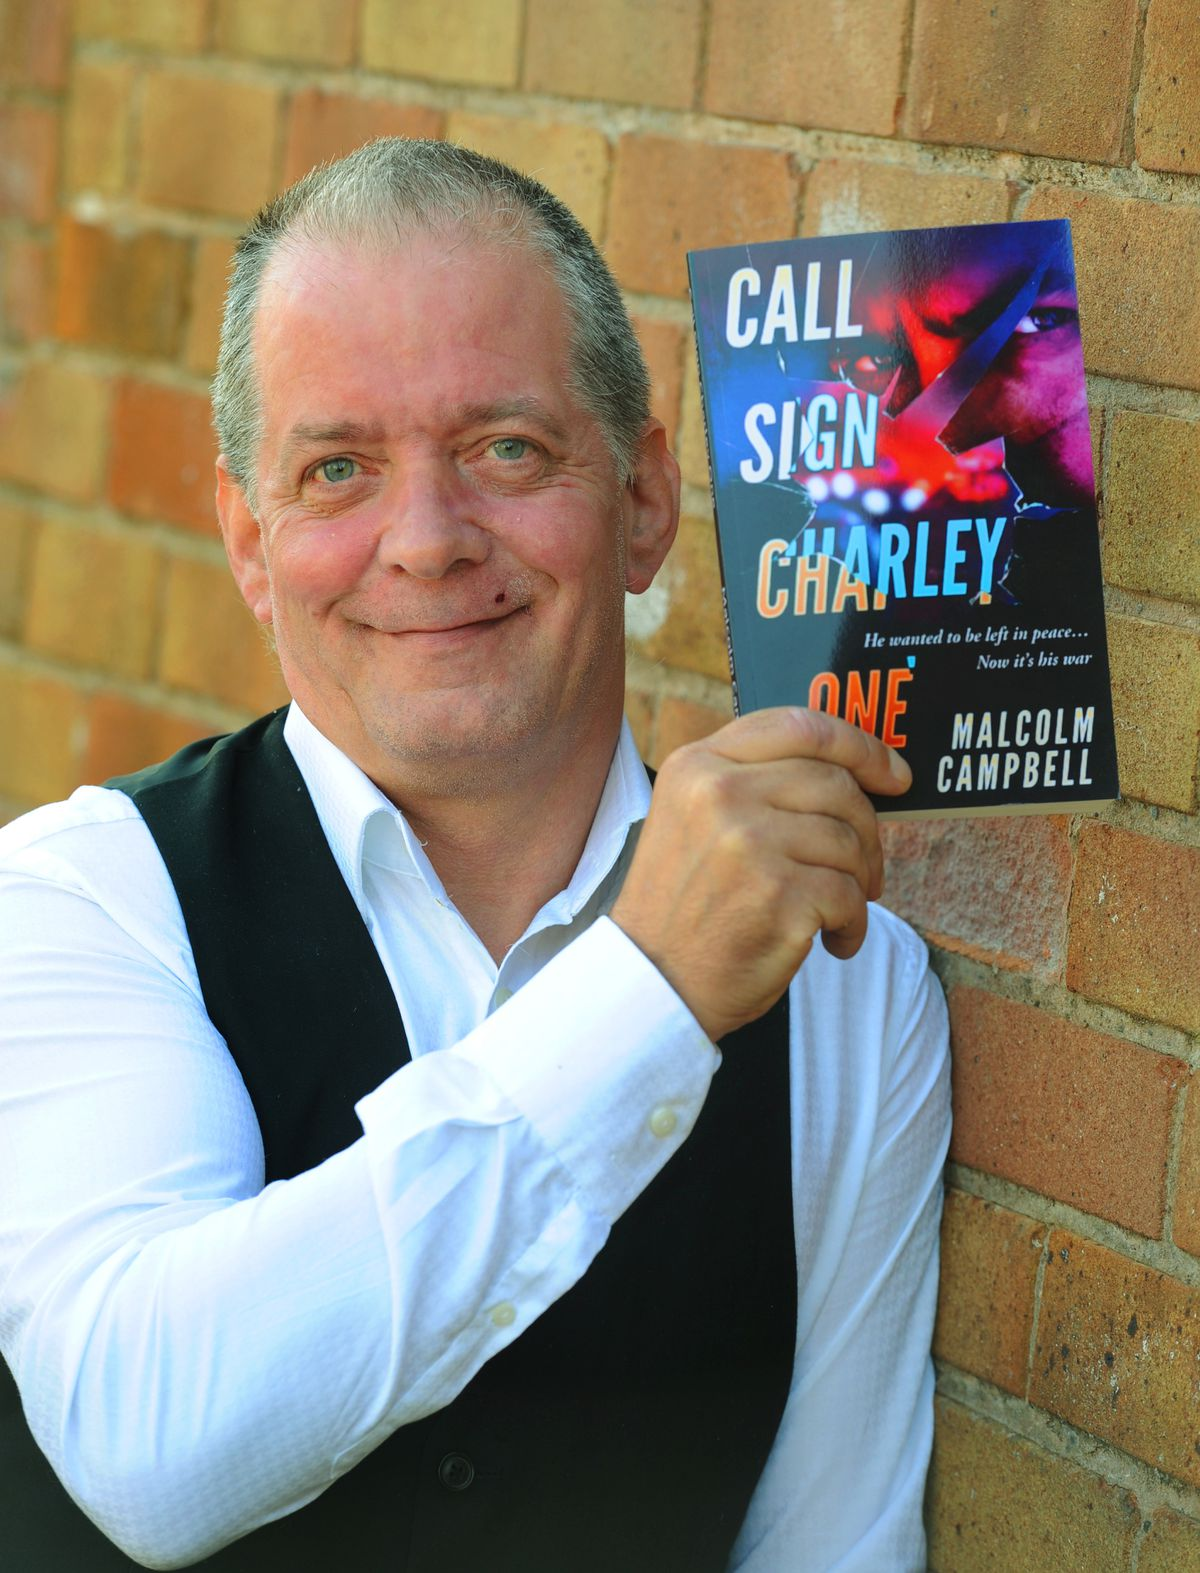 Author Malcolm Campbell, of Kidderminster, with his book 'Call Sign Charley One'